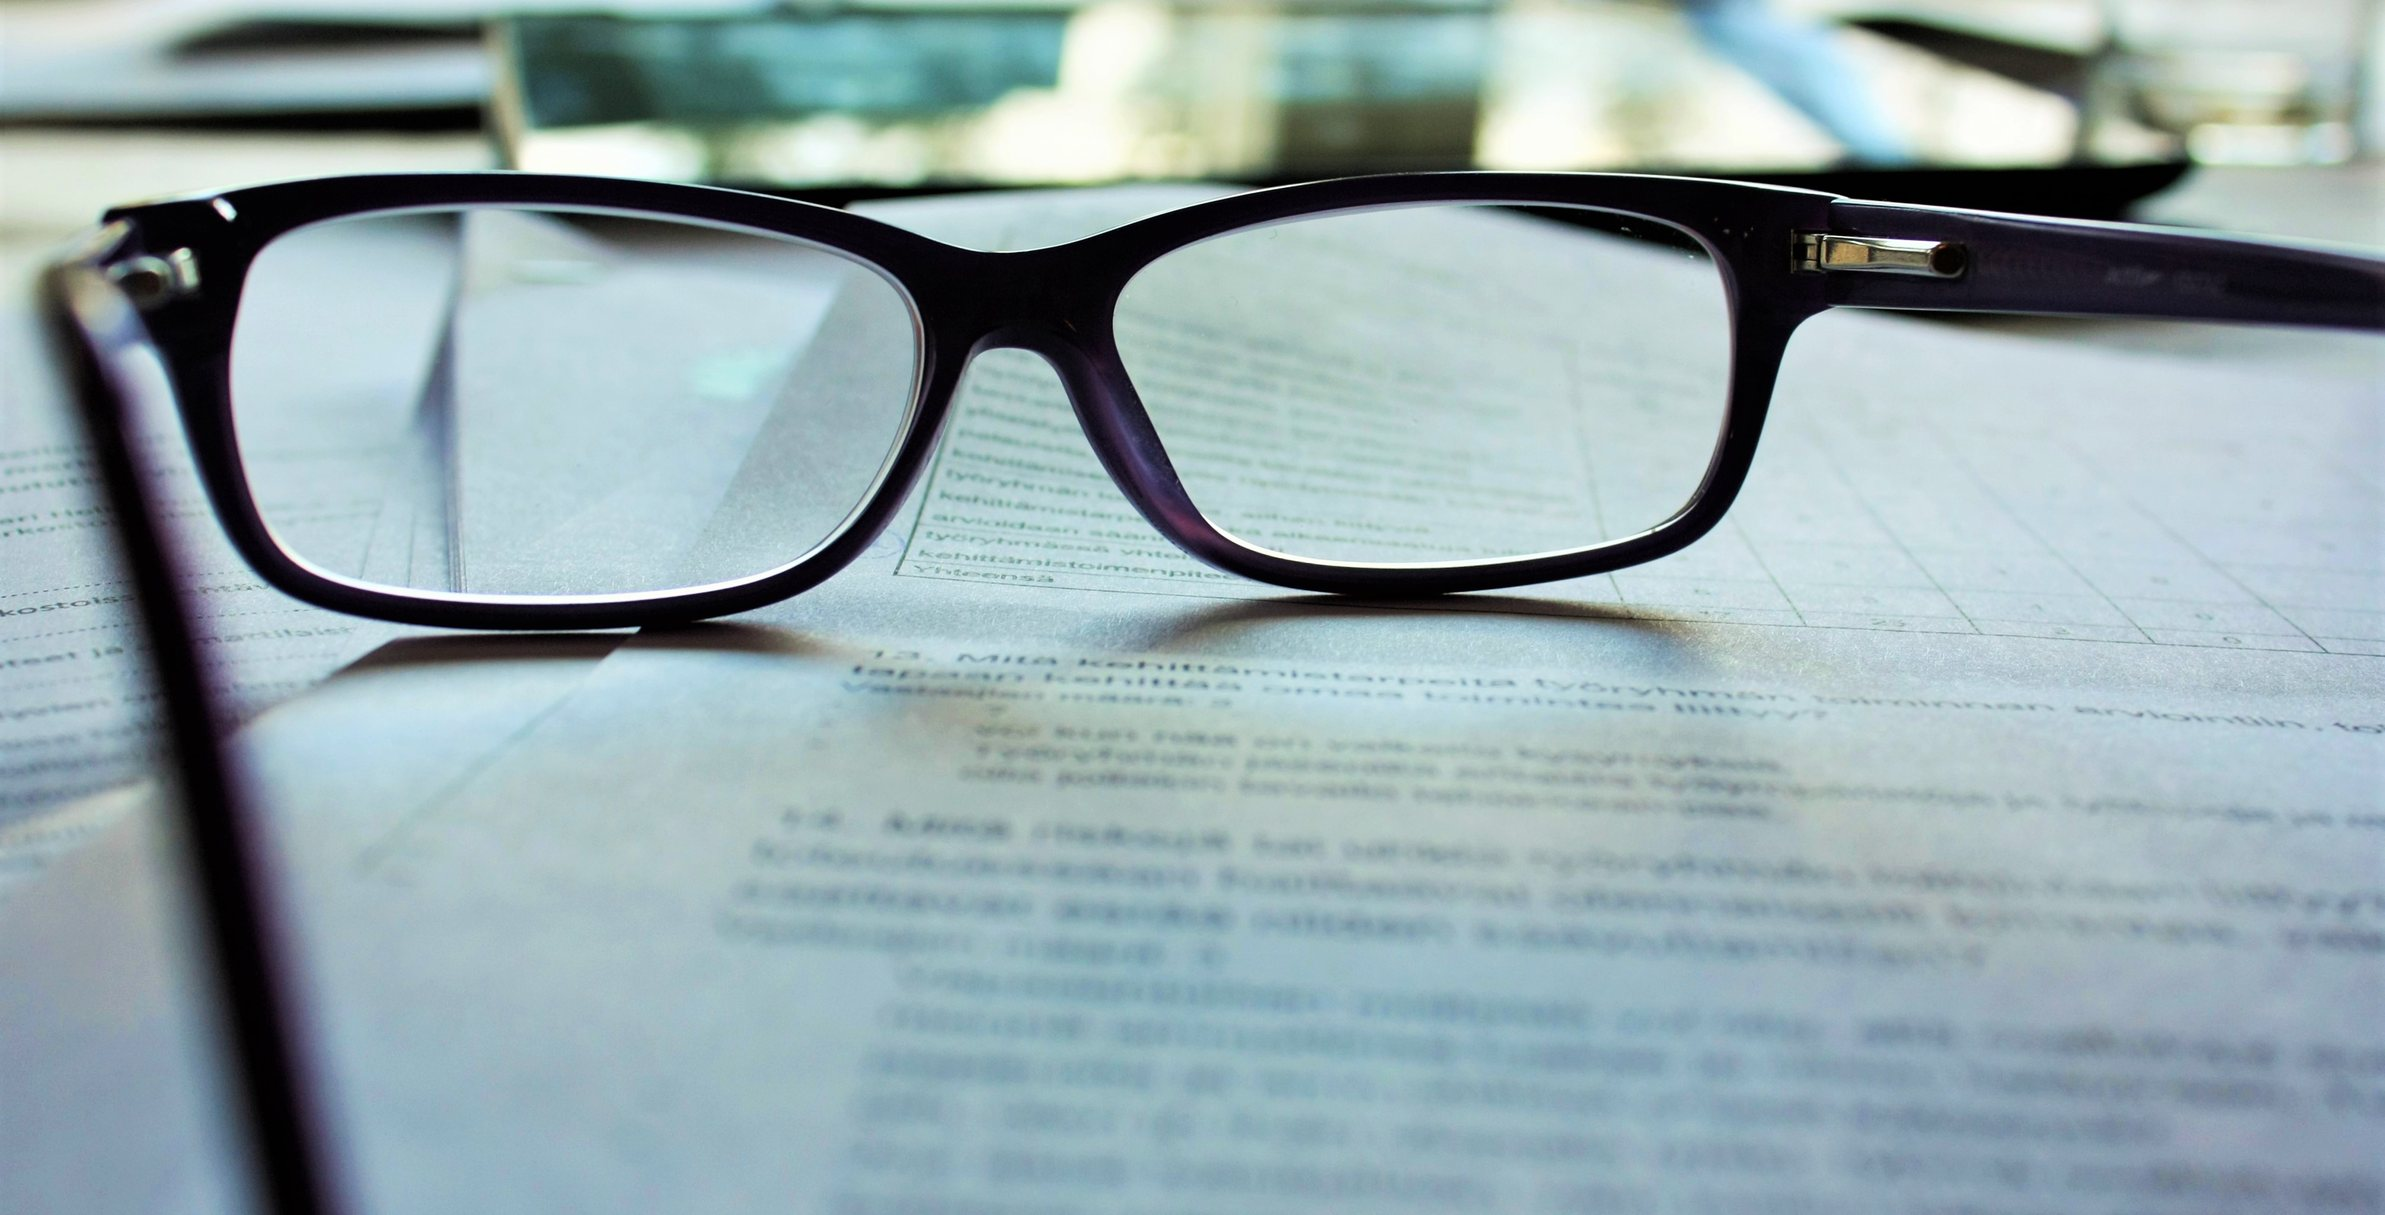 Photo of glasses and papers illustrates article on what small business owners need to outsource accounting.